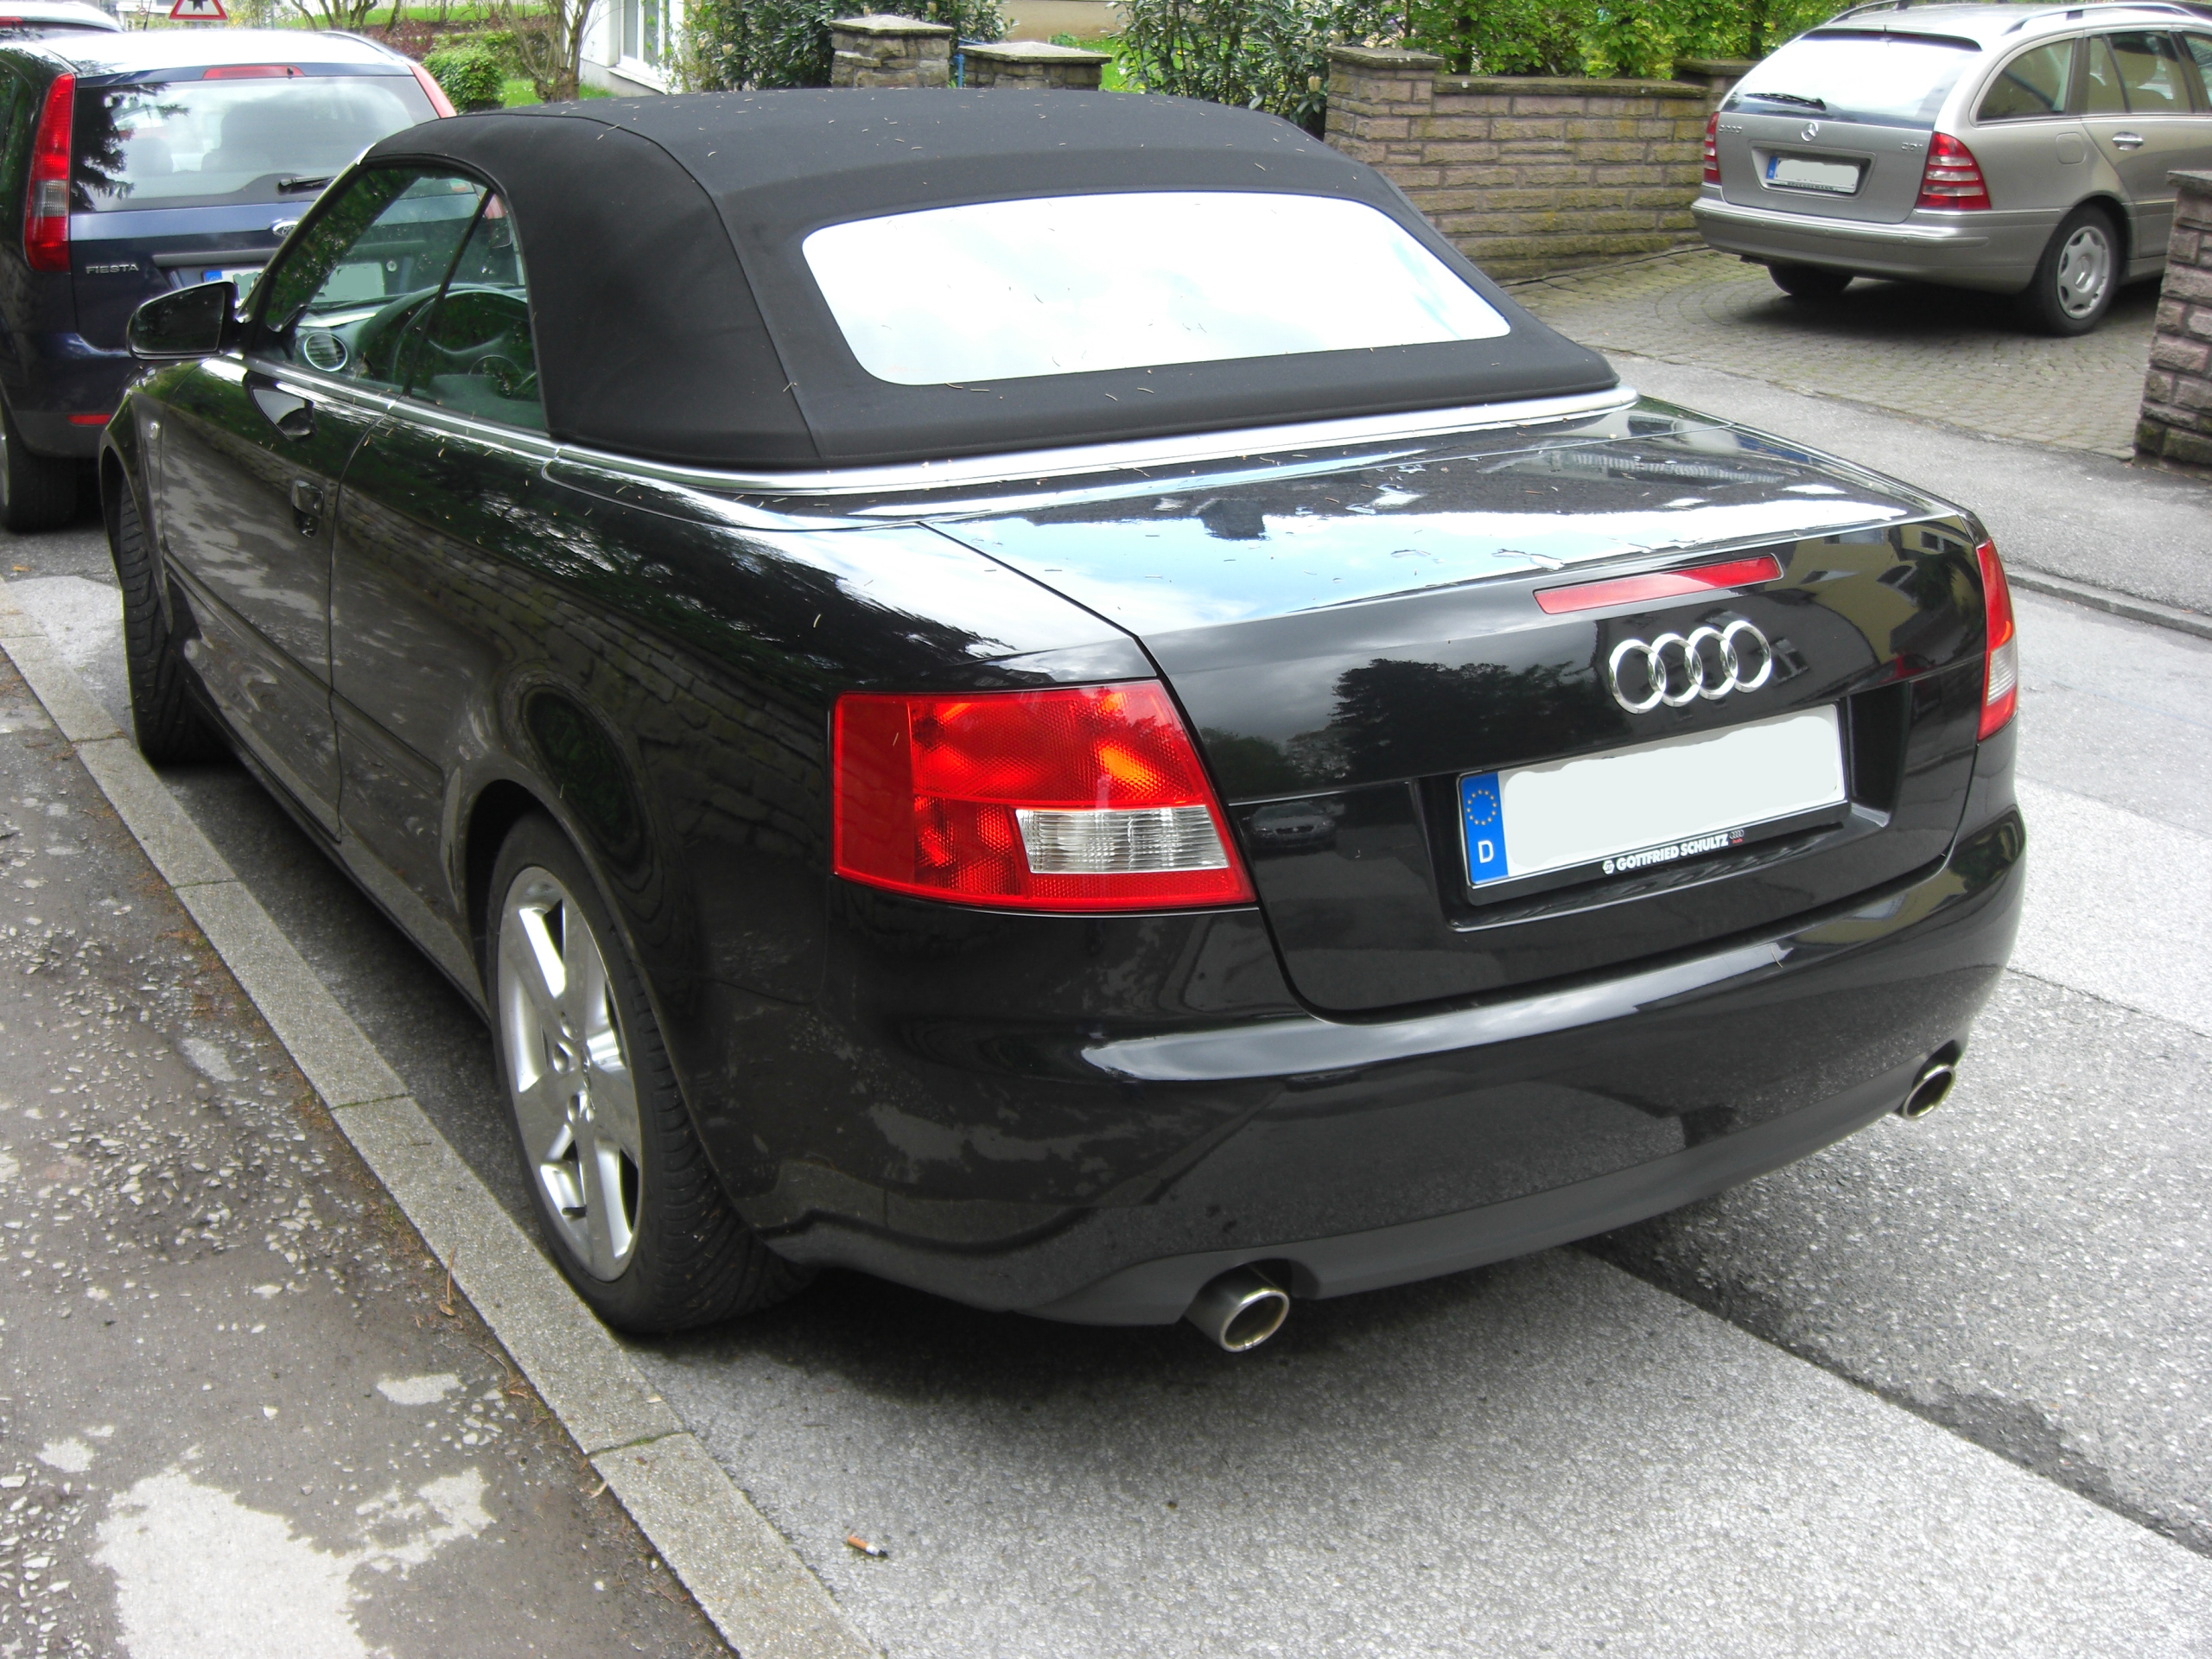 File Audi A4 Cabriolet B6 Rear Jpg Wikimedia Commons